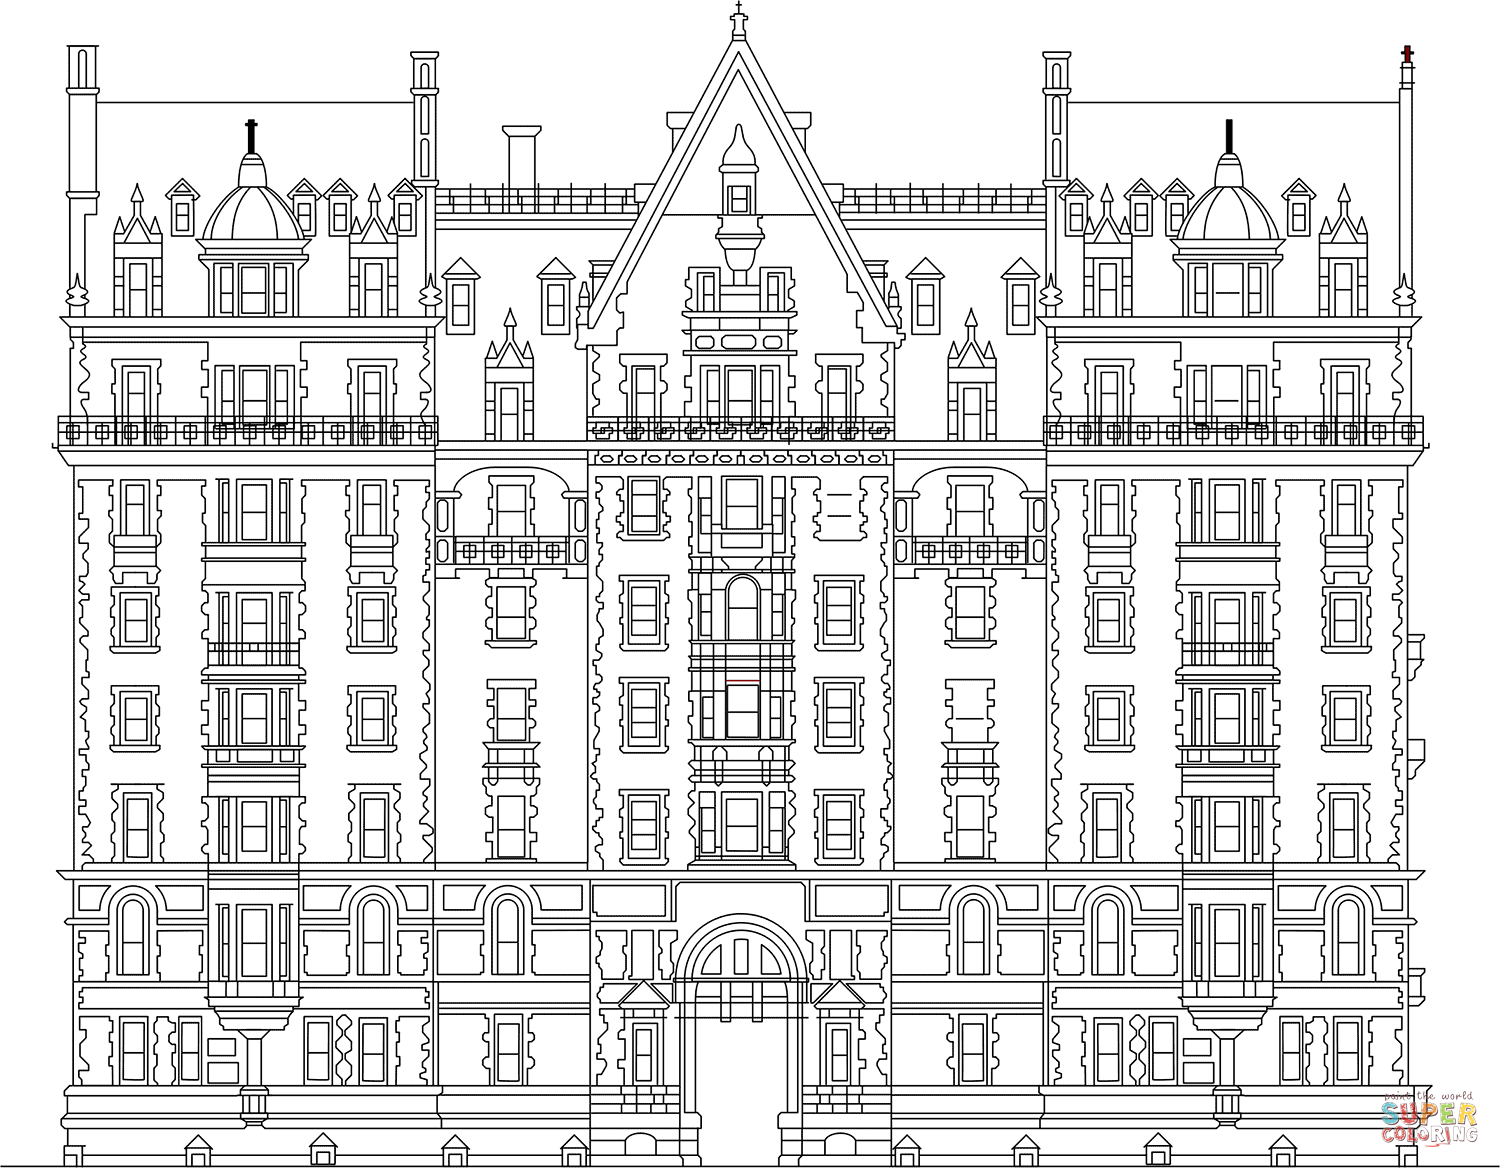 Building Coloring Page Dakota Apartments Building In New York Coloring Page Free